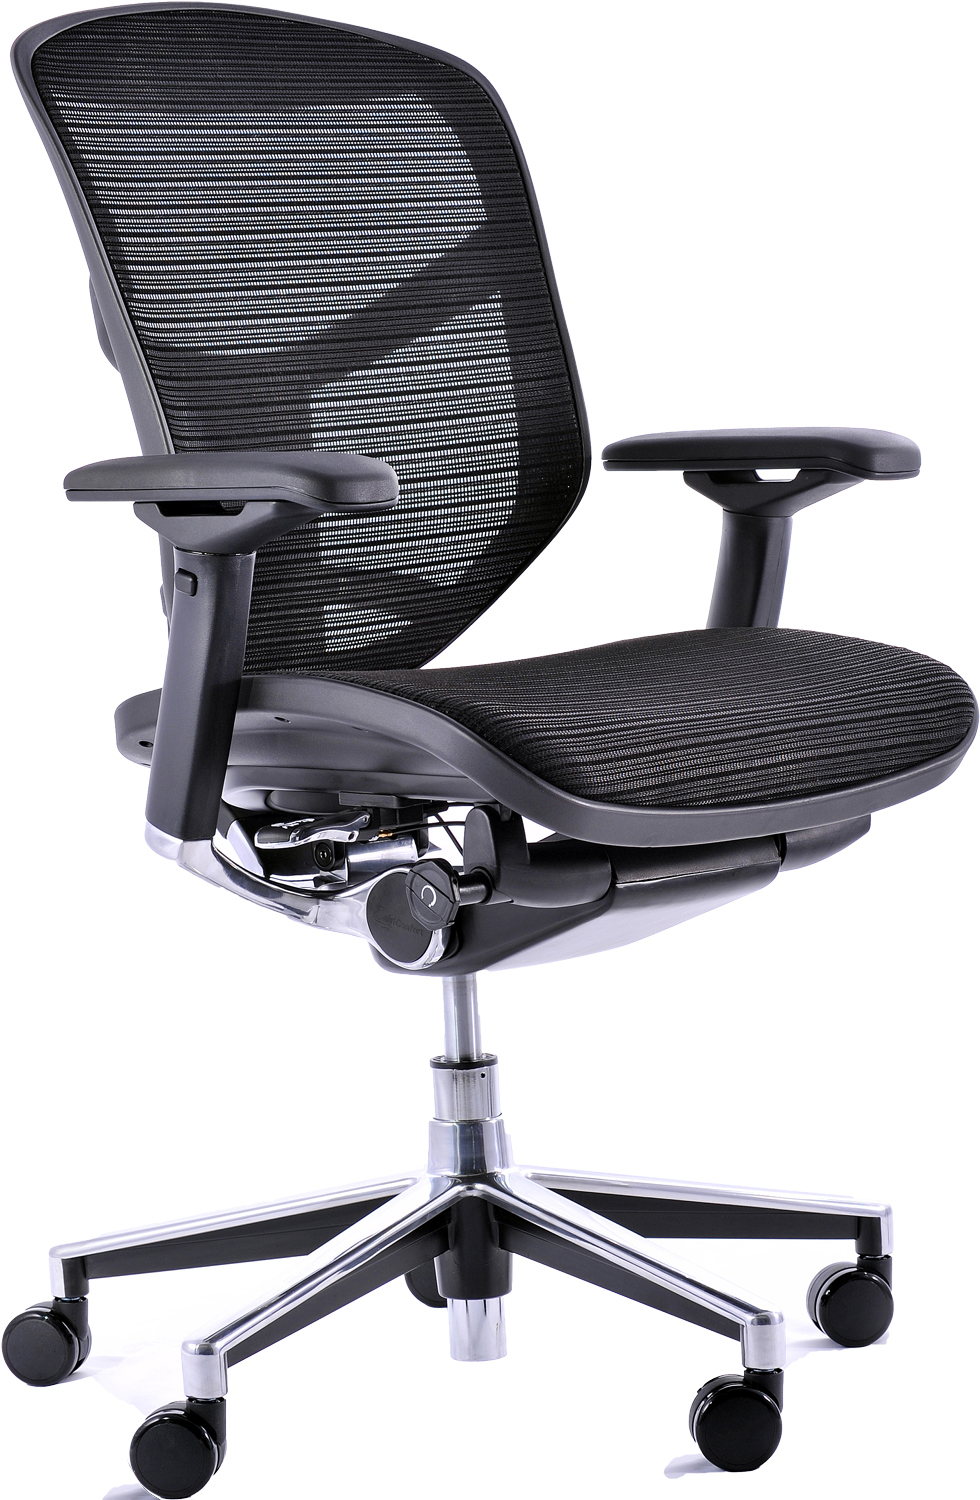 Ergonomic Office Chair Bangalore